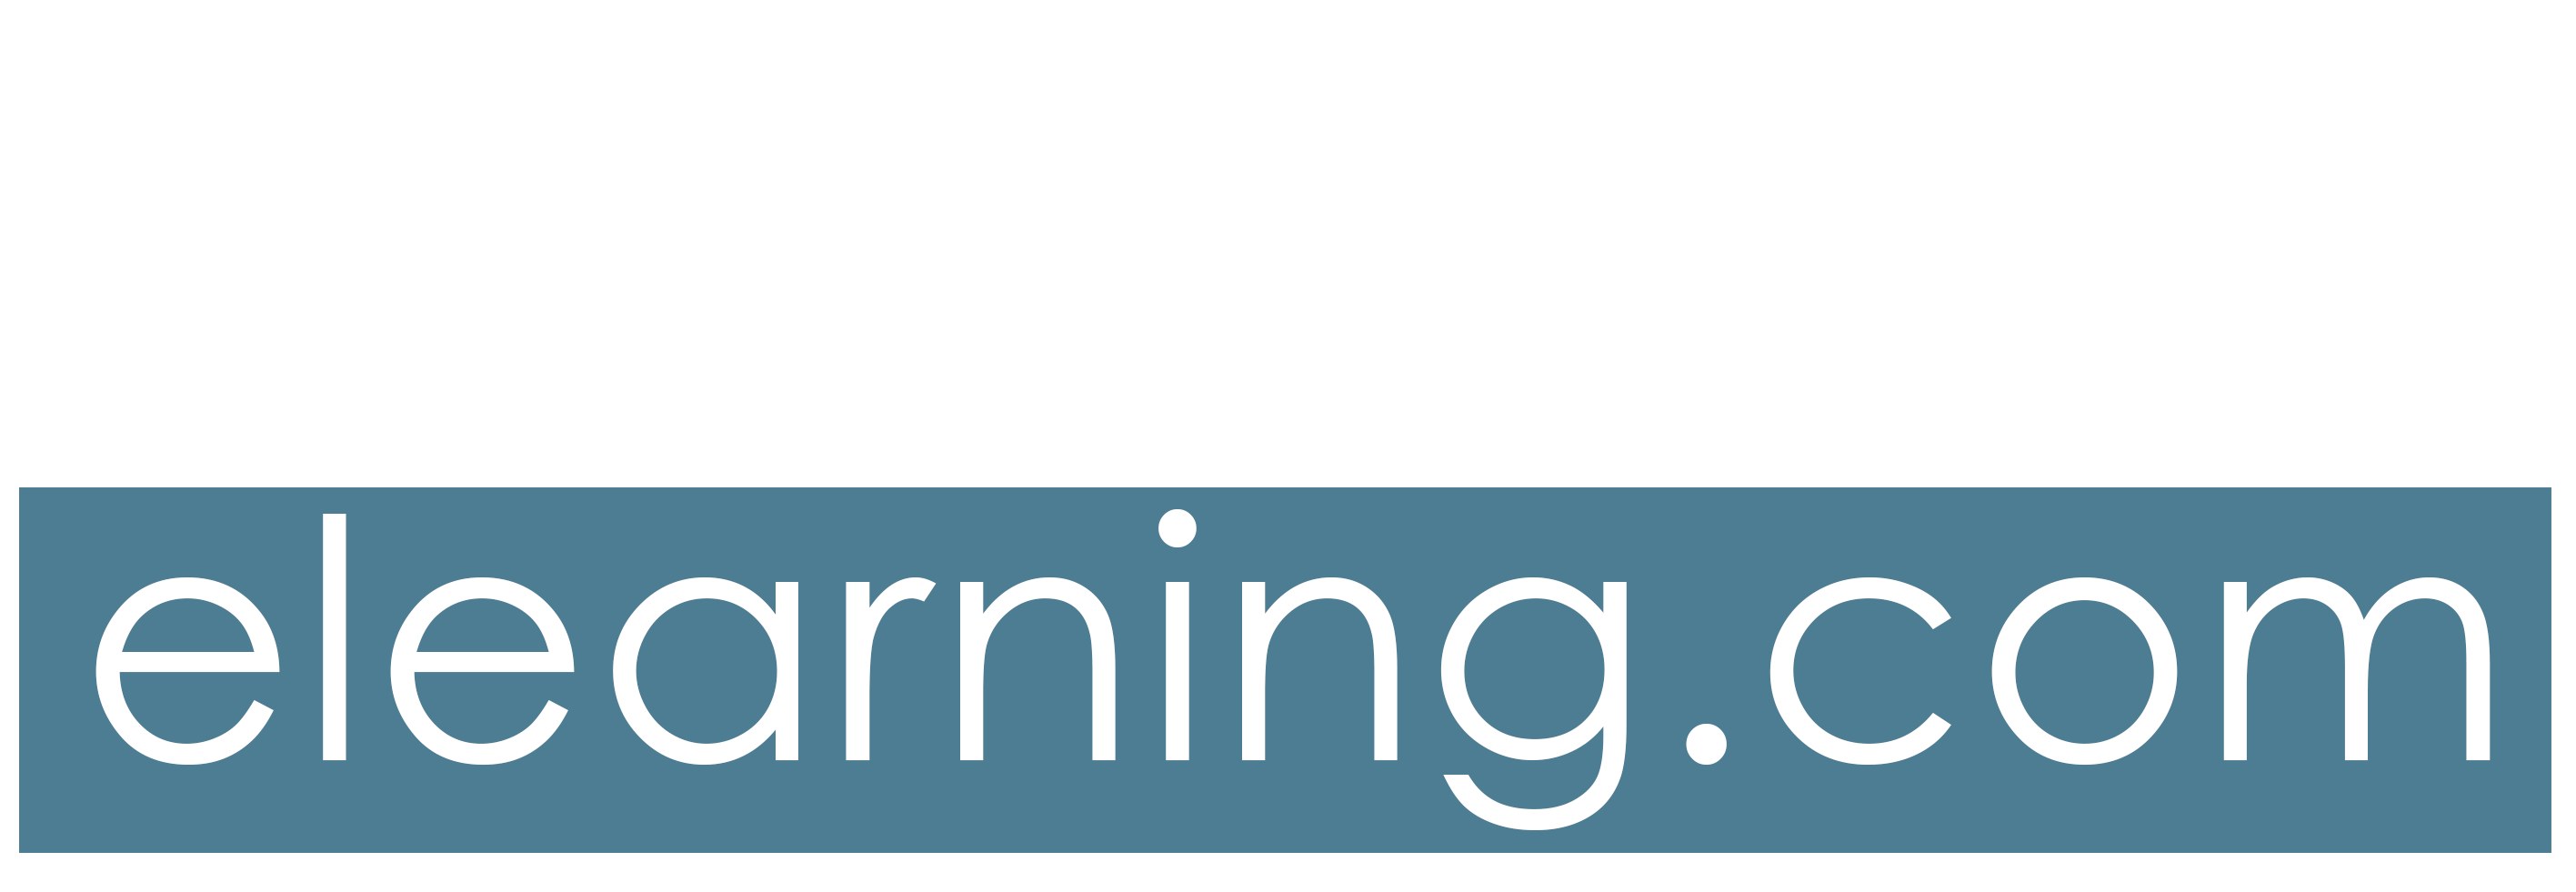 Foresight eLearning